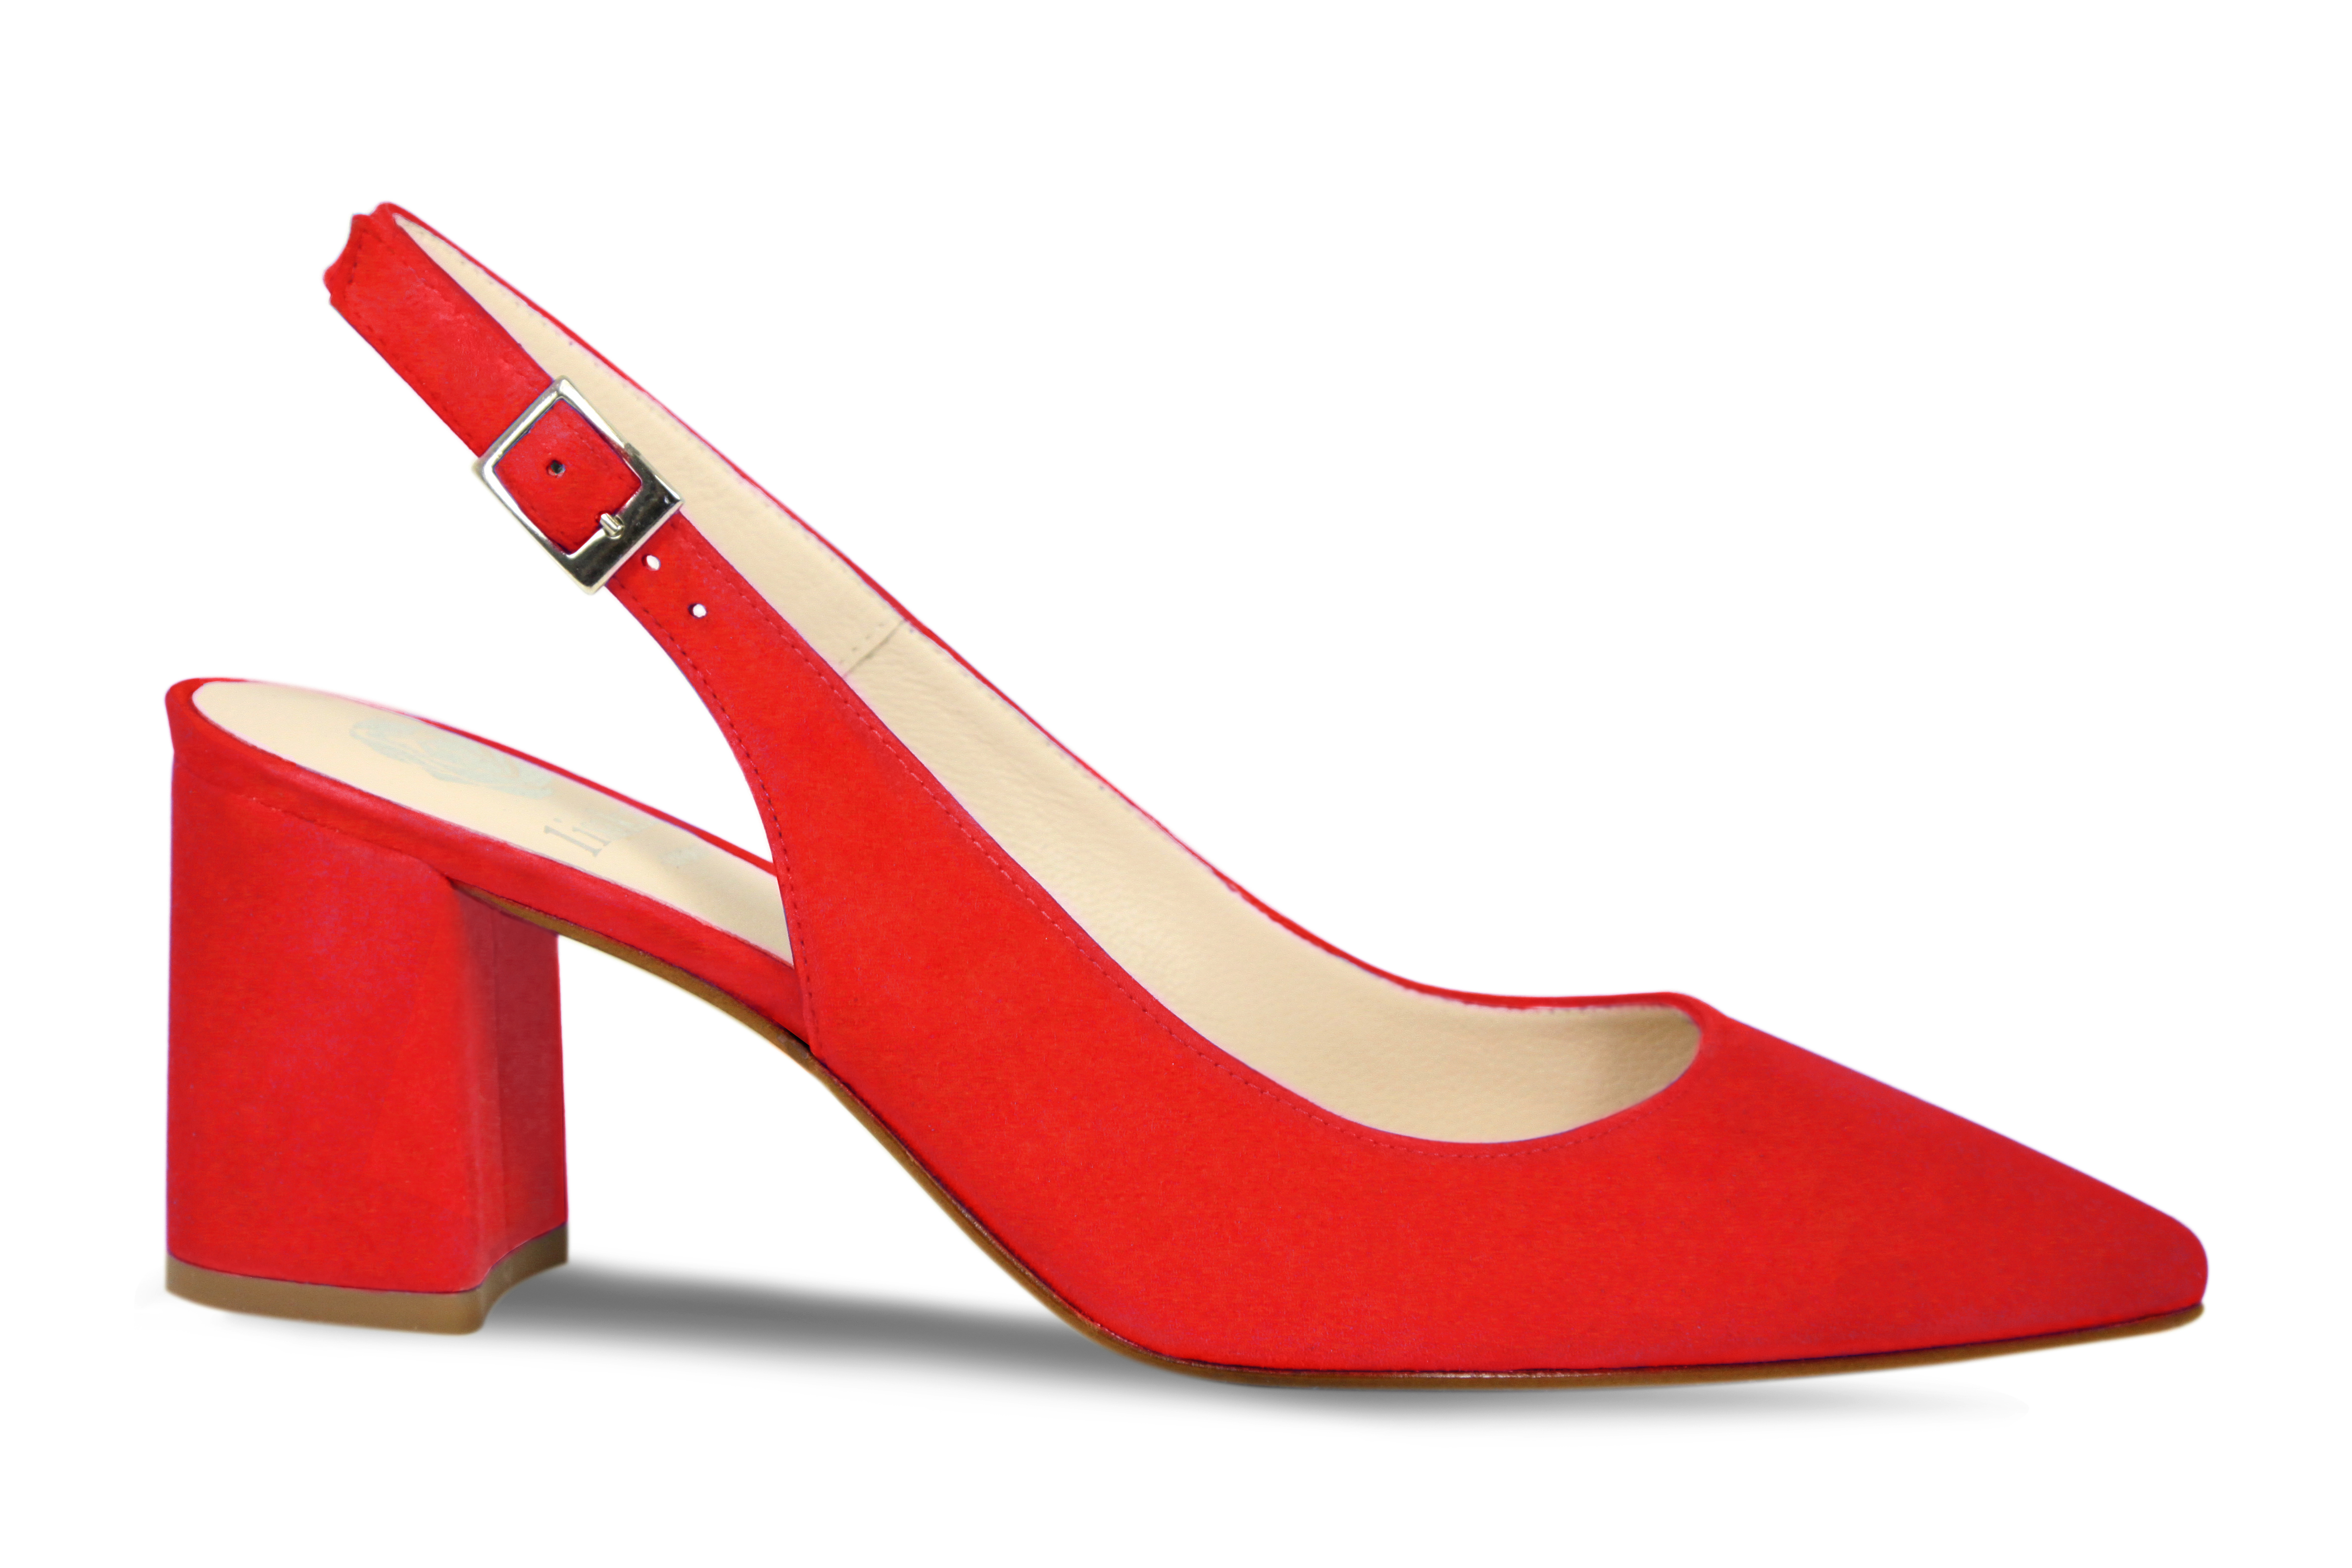 Red suede comfort slingback heels by Lisa Kay London